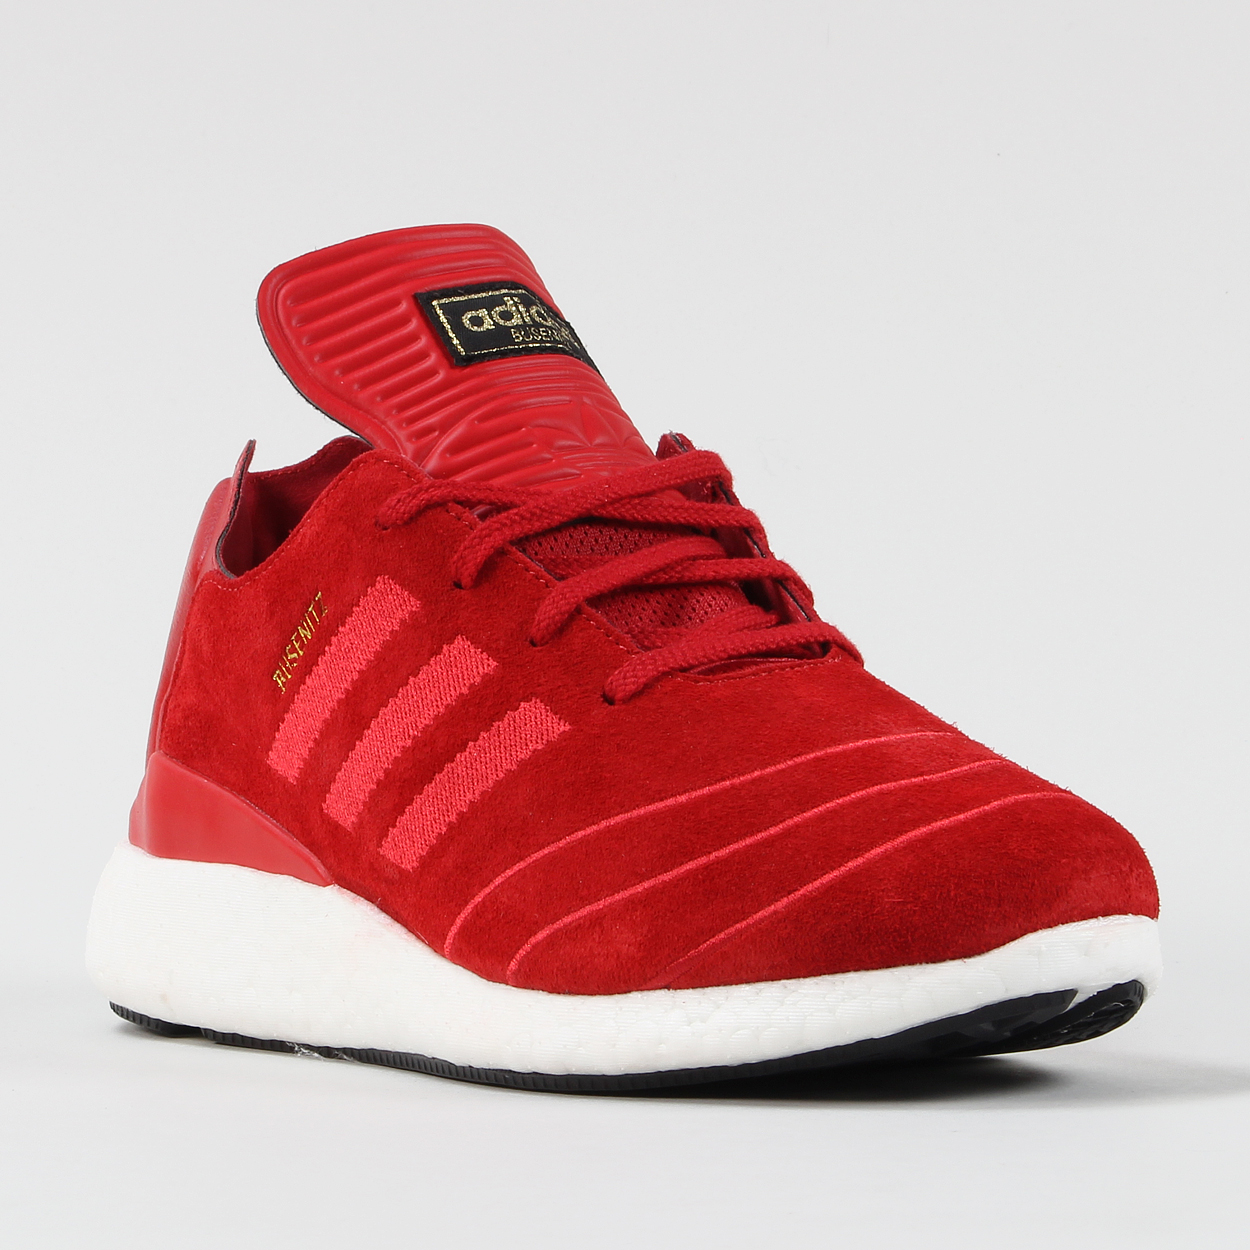 d90198321e0 The Busenitz shoe from Adidas has been given a new lightweight runner  influenced design with the new Busenitz Pure Boost